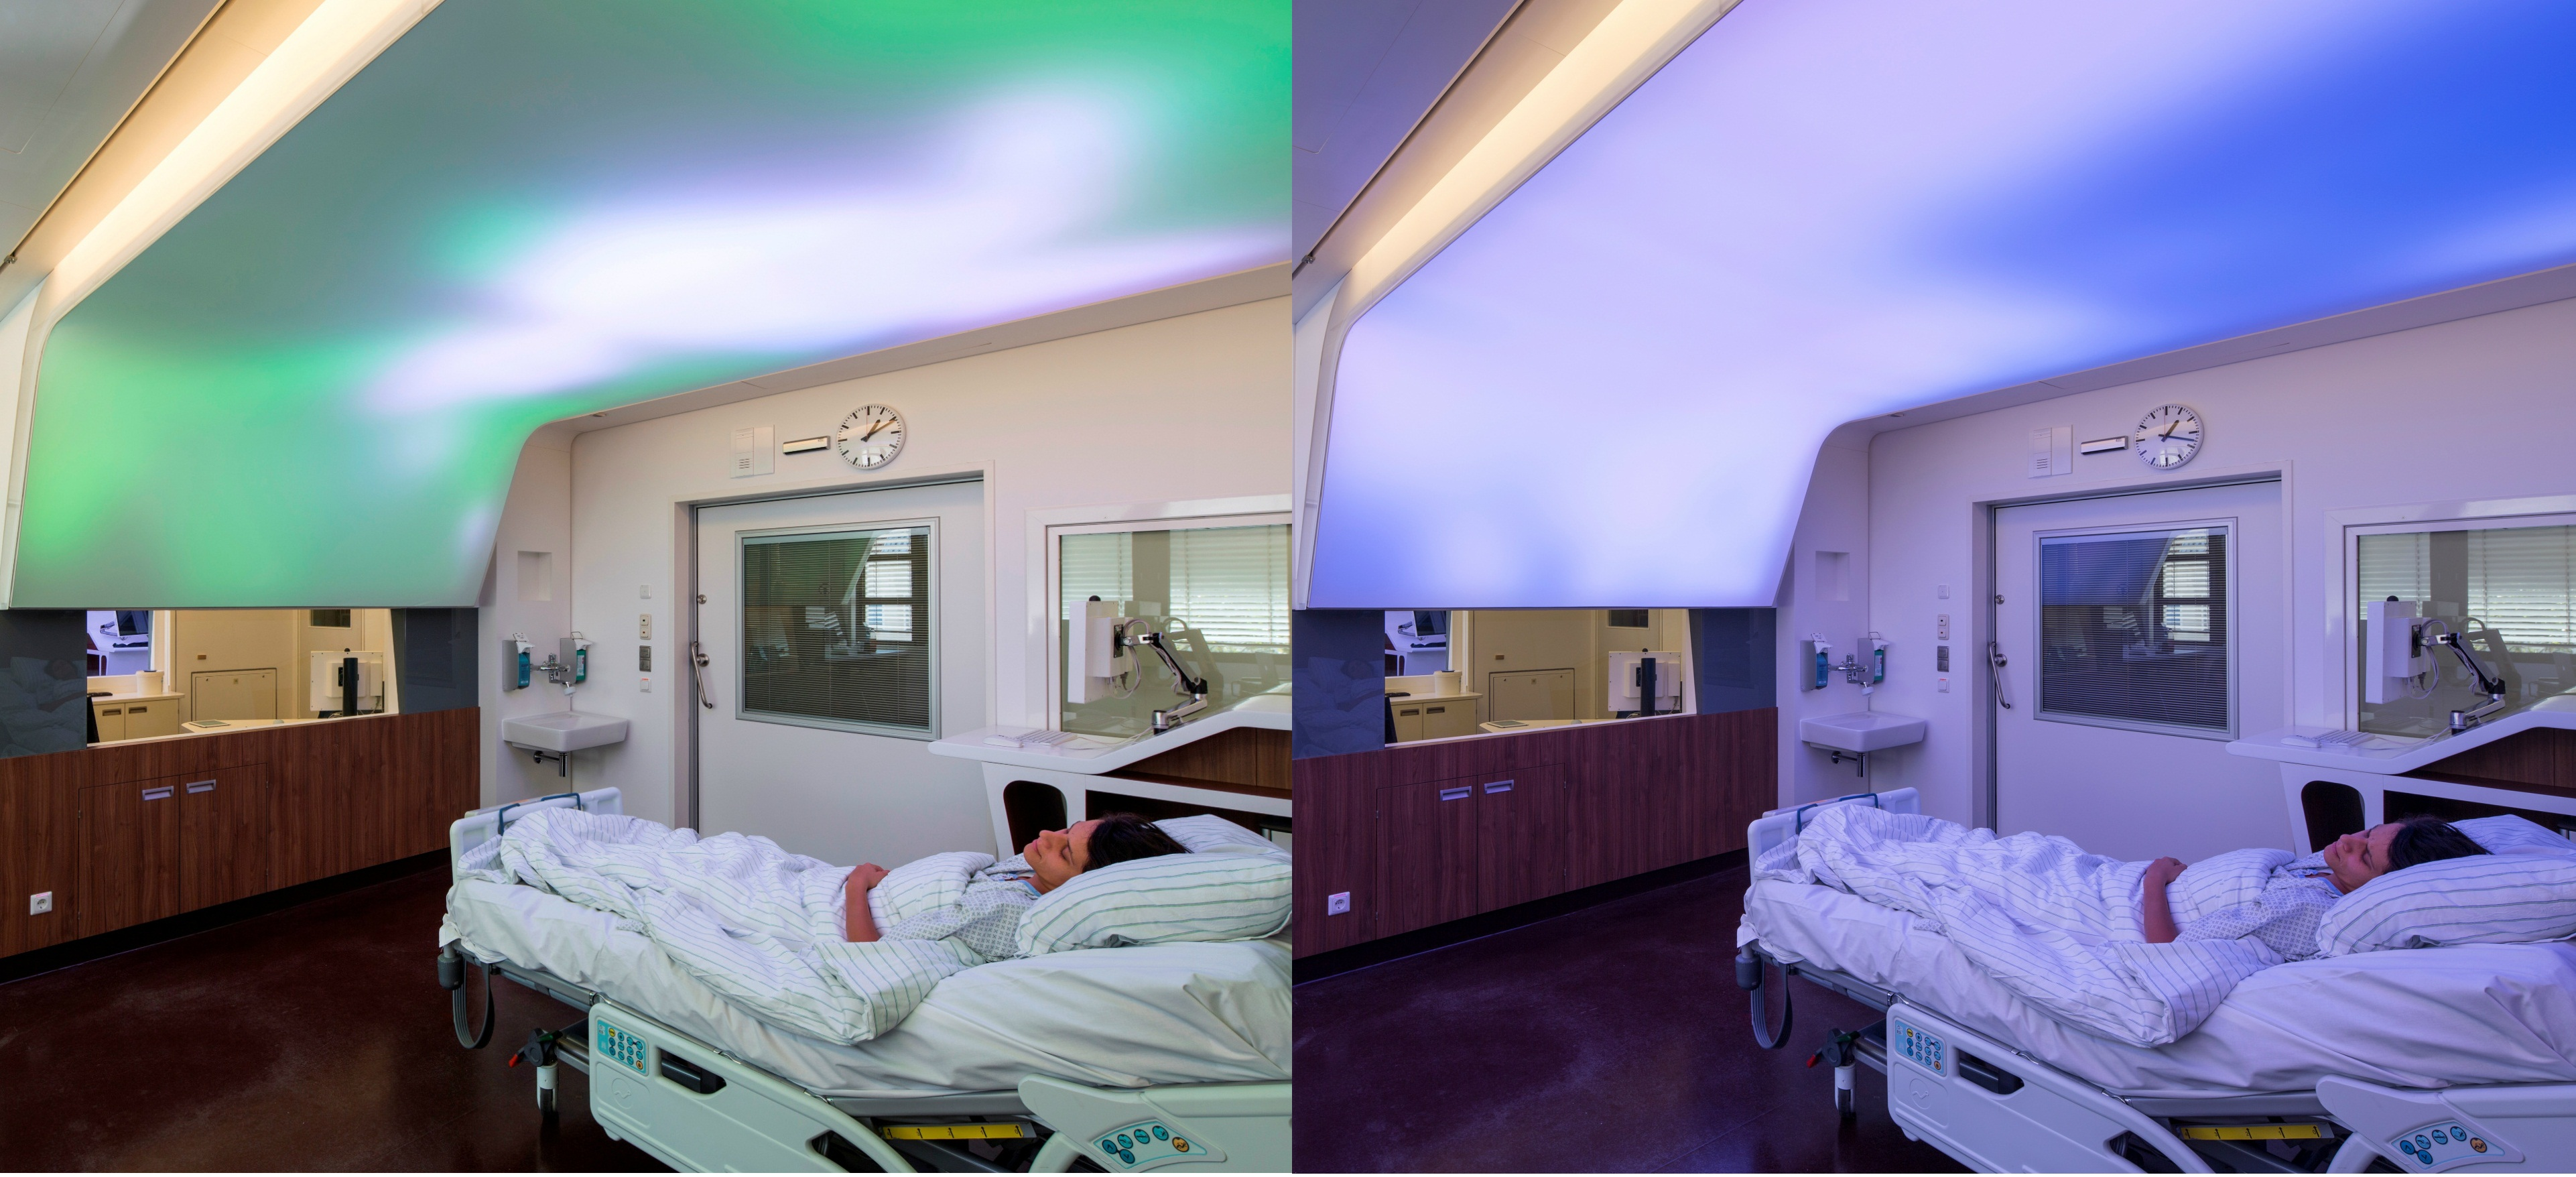 Thanks To Its High Performance Leds The Luminous Ceiling Is Able Produce Light Output That Comparable With From A Clear Sky